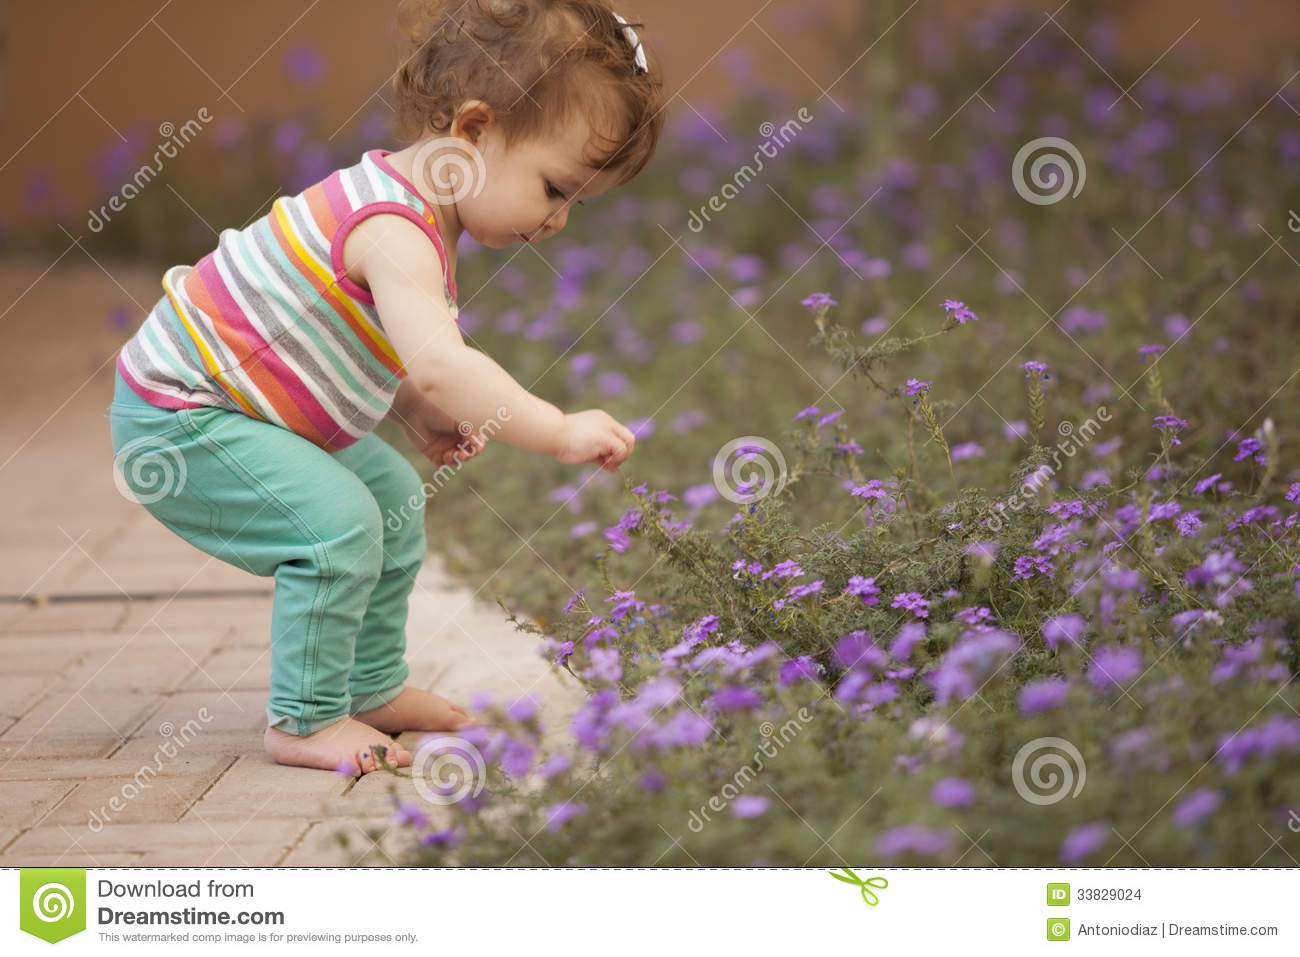 cute baby girl picking flowers stock photo - image of park, pretty